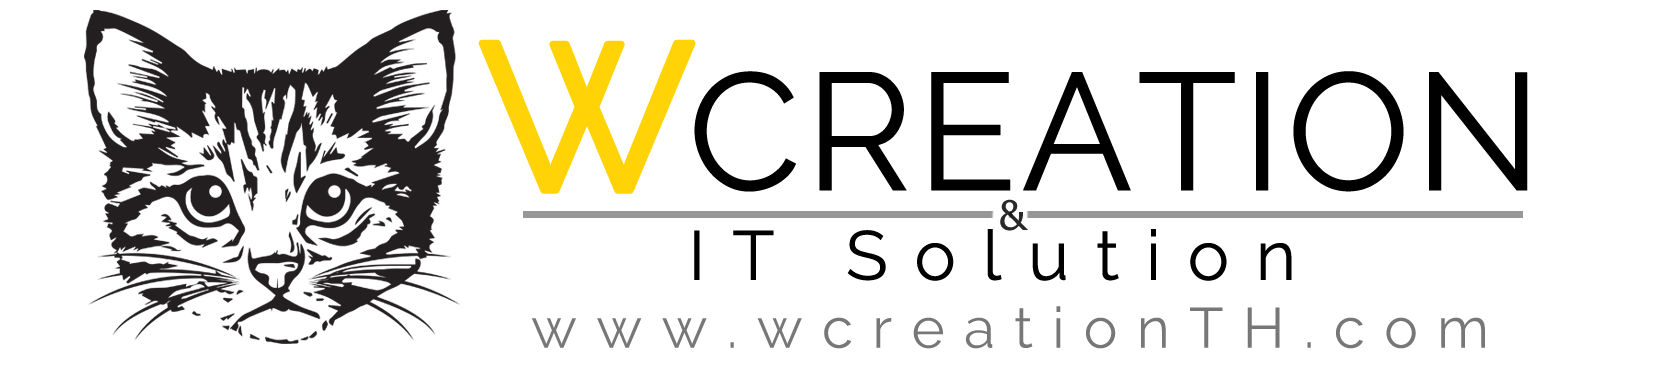 WCREATION AND IT SOLUTION